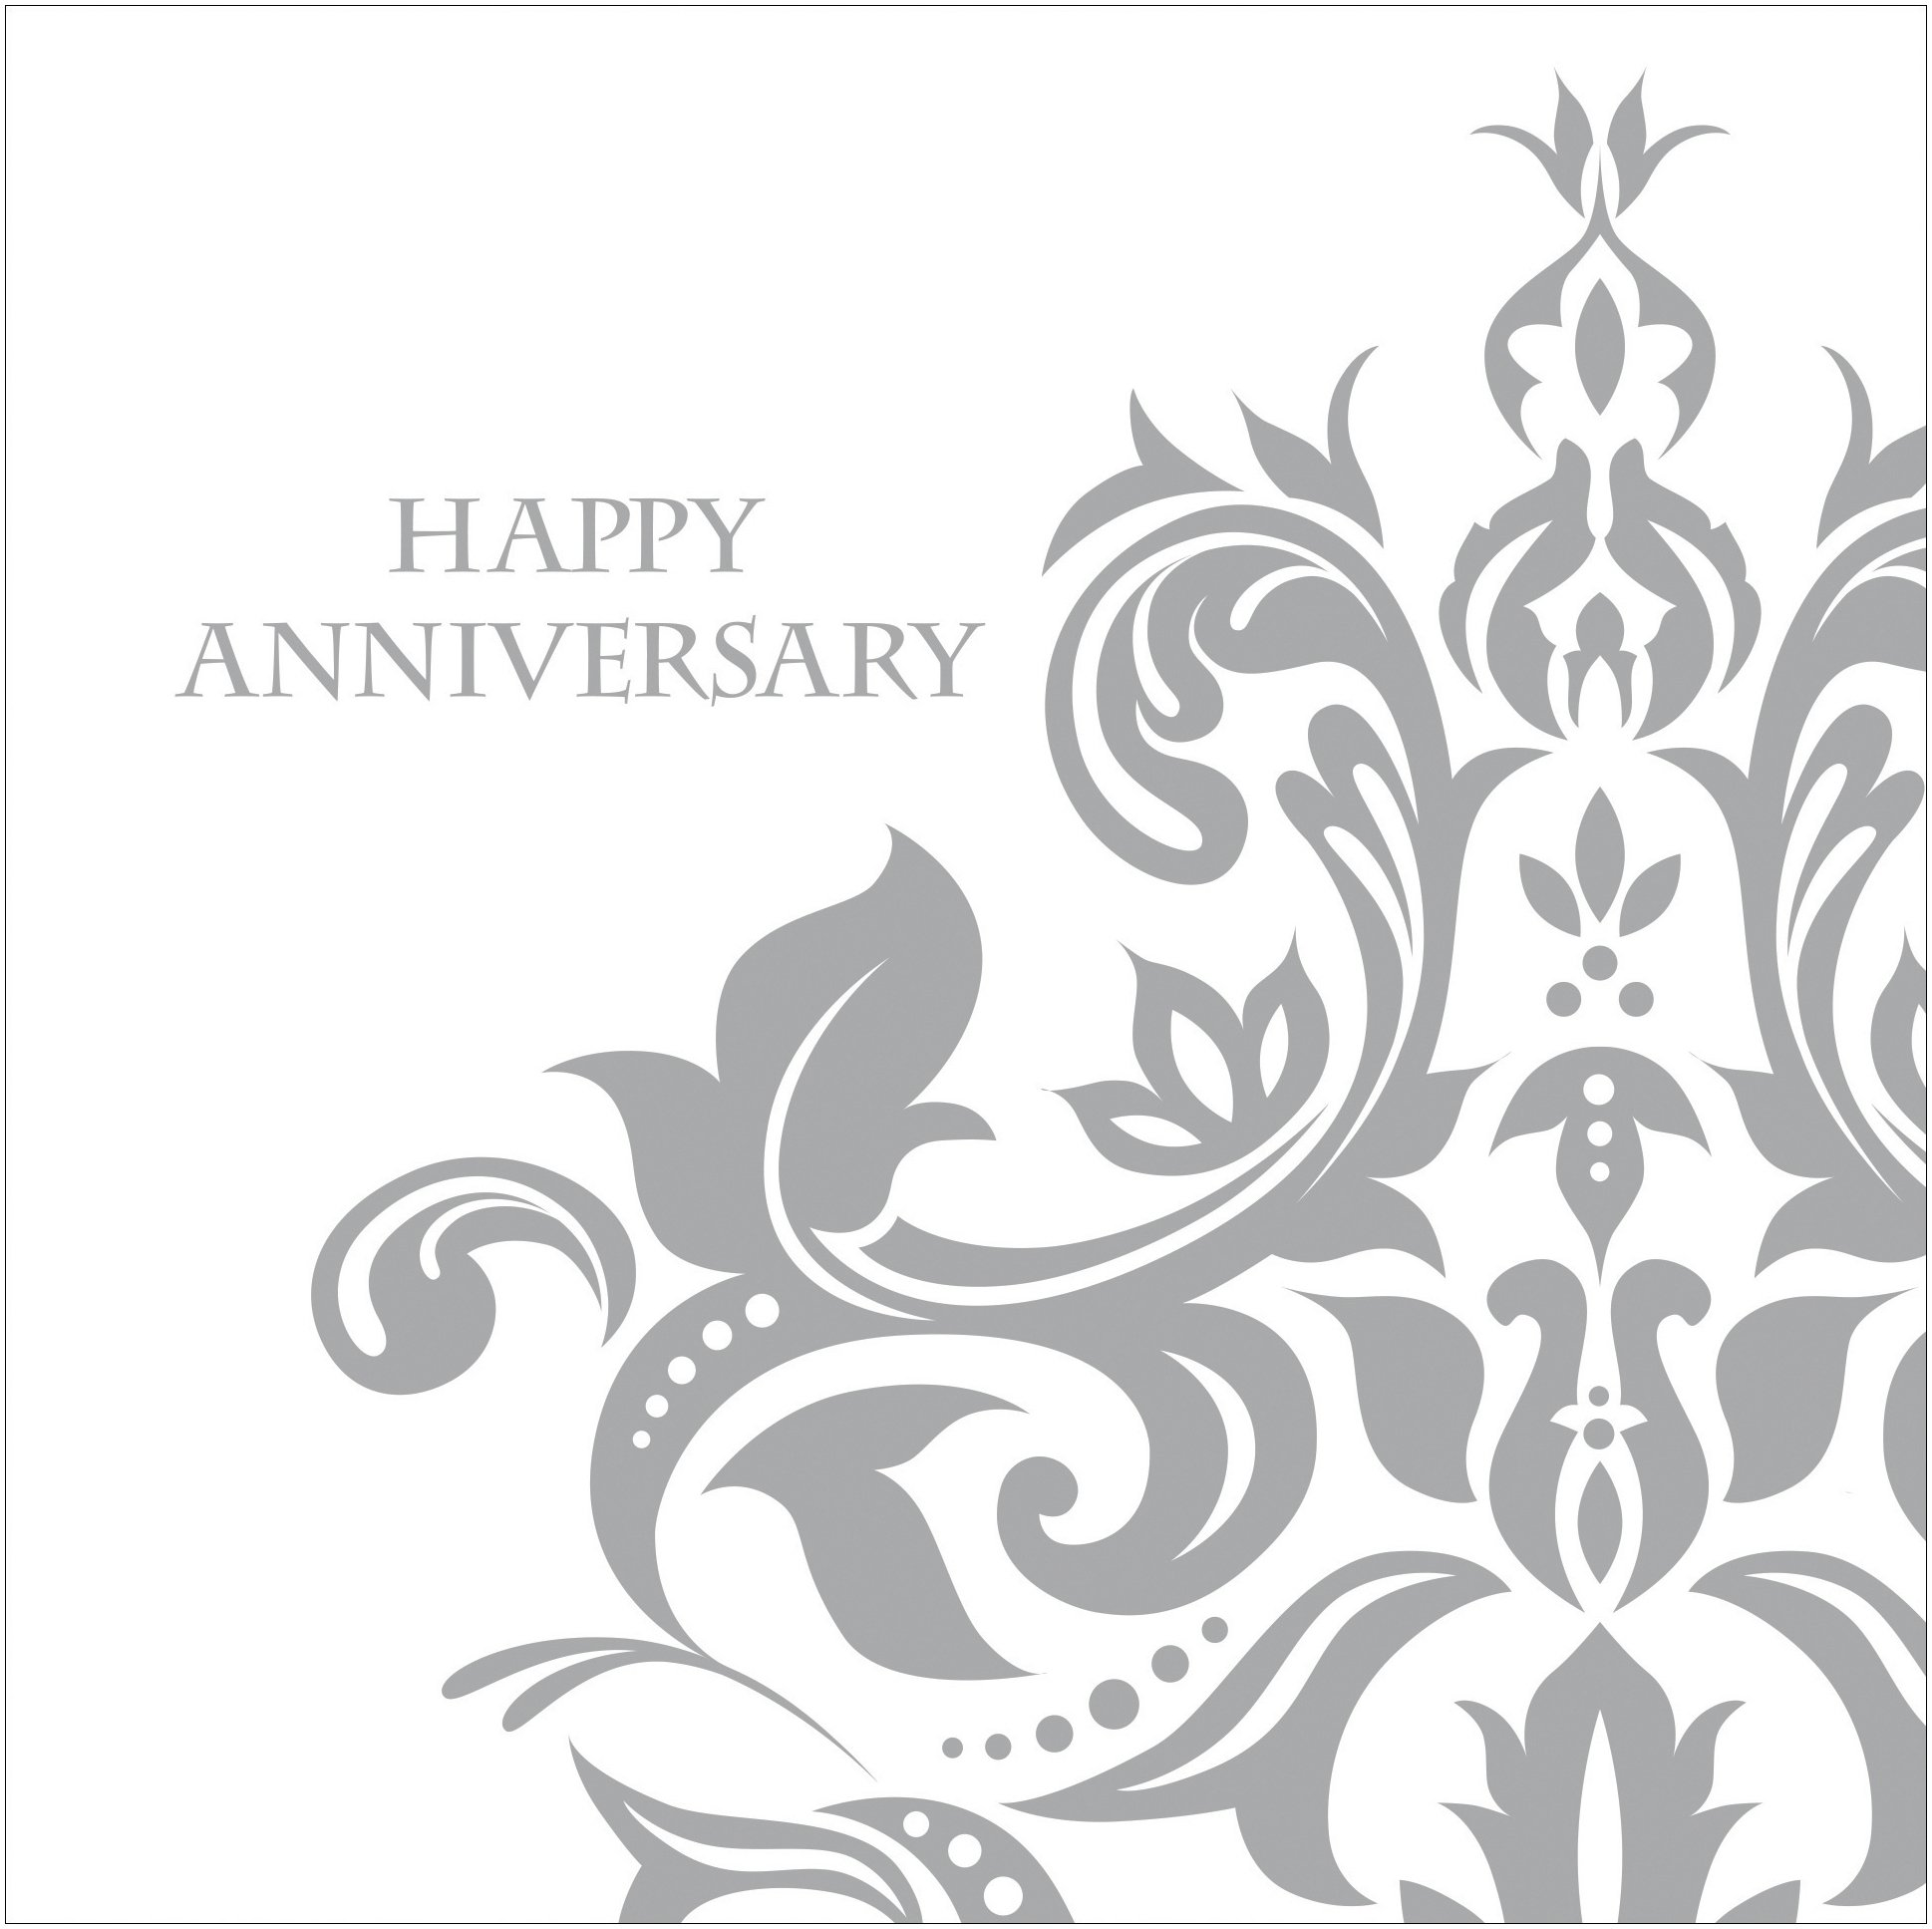 Creative Converting 36 Count 3 Ply Happy Anniversary Lunch Napkins, Silver